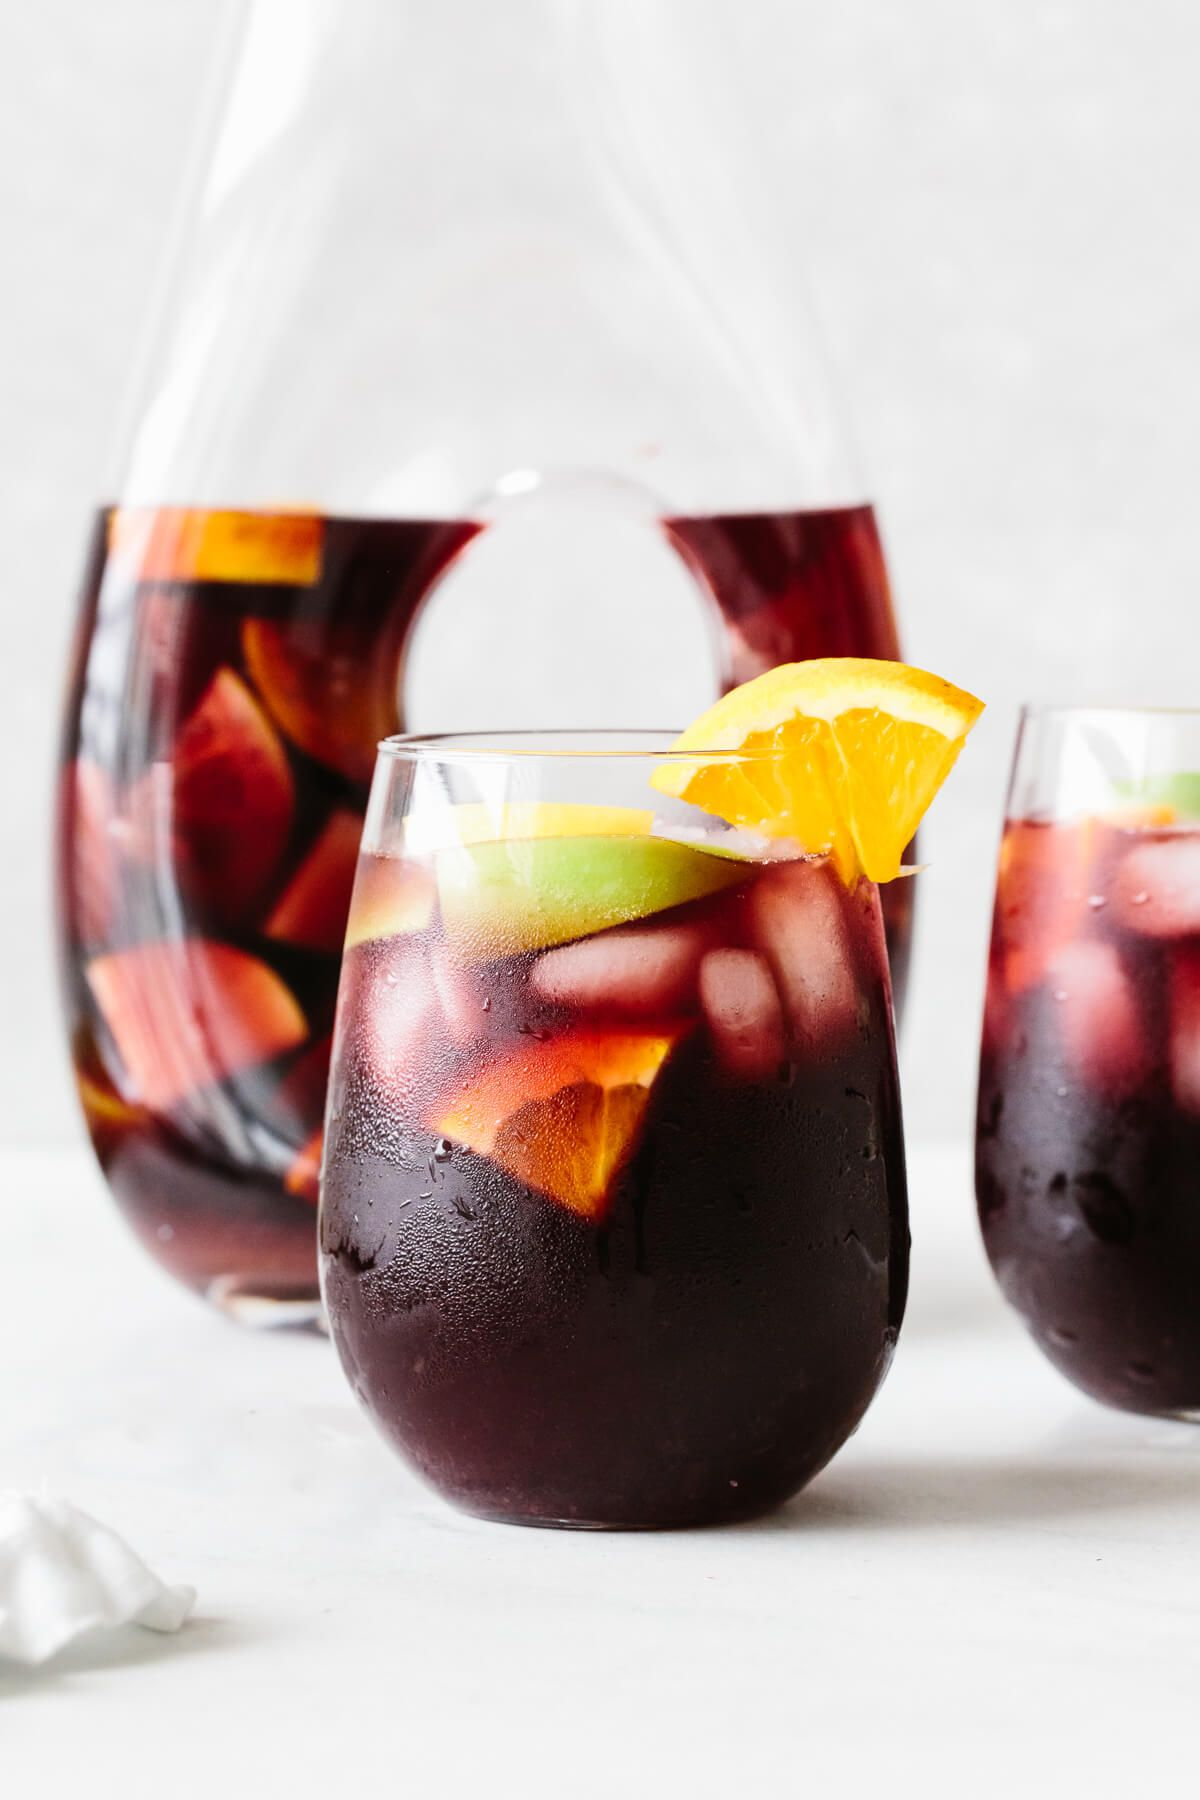 Red Sangria Is A Sweet Cocktail Made From An Infusion Of Spanish Red Wine And Fresh Fruit It S An Easy Recipe In 2020 Red Sangria Red Sangria Recipes Sangria Recipes